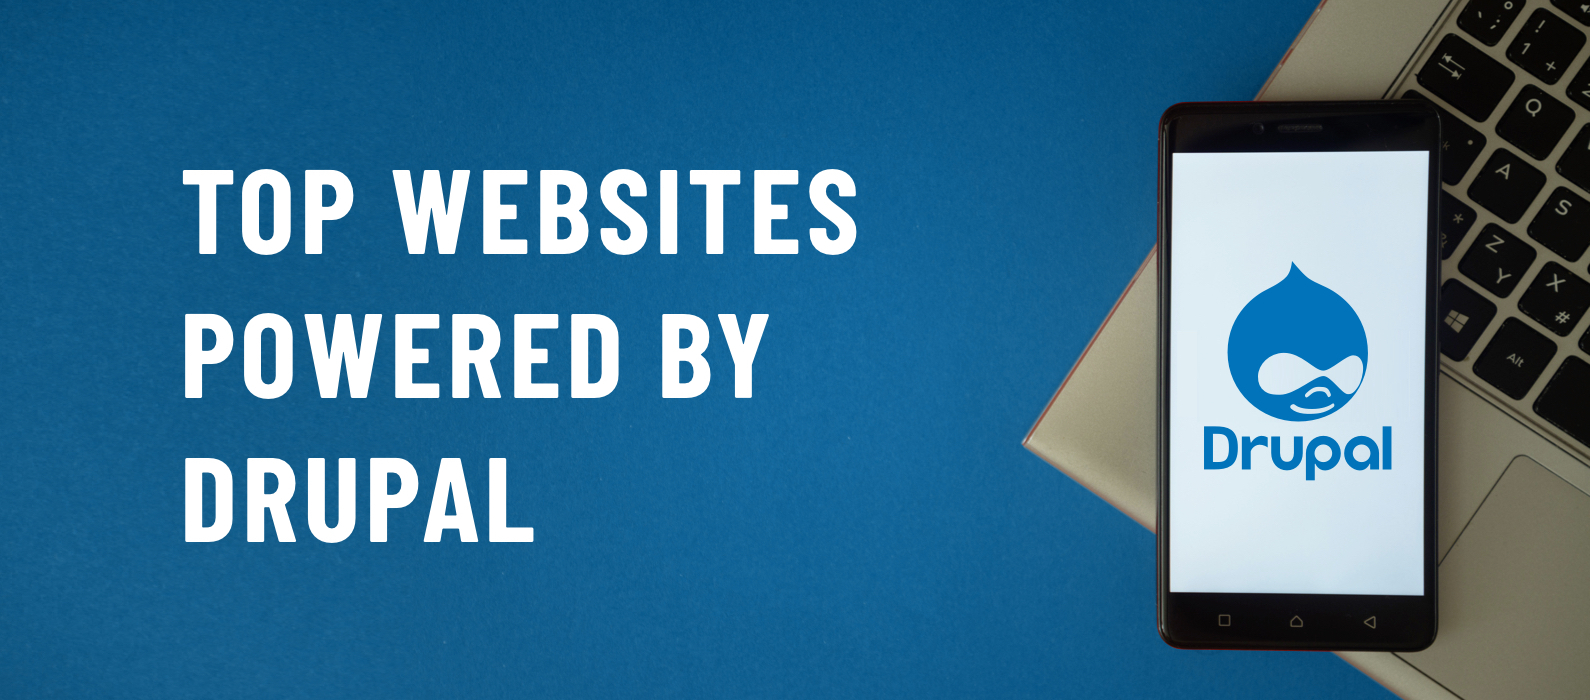 websites powered by drupal